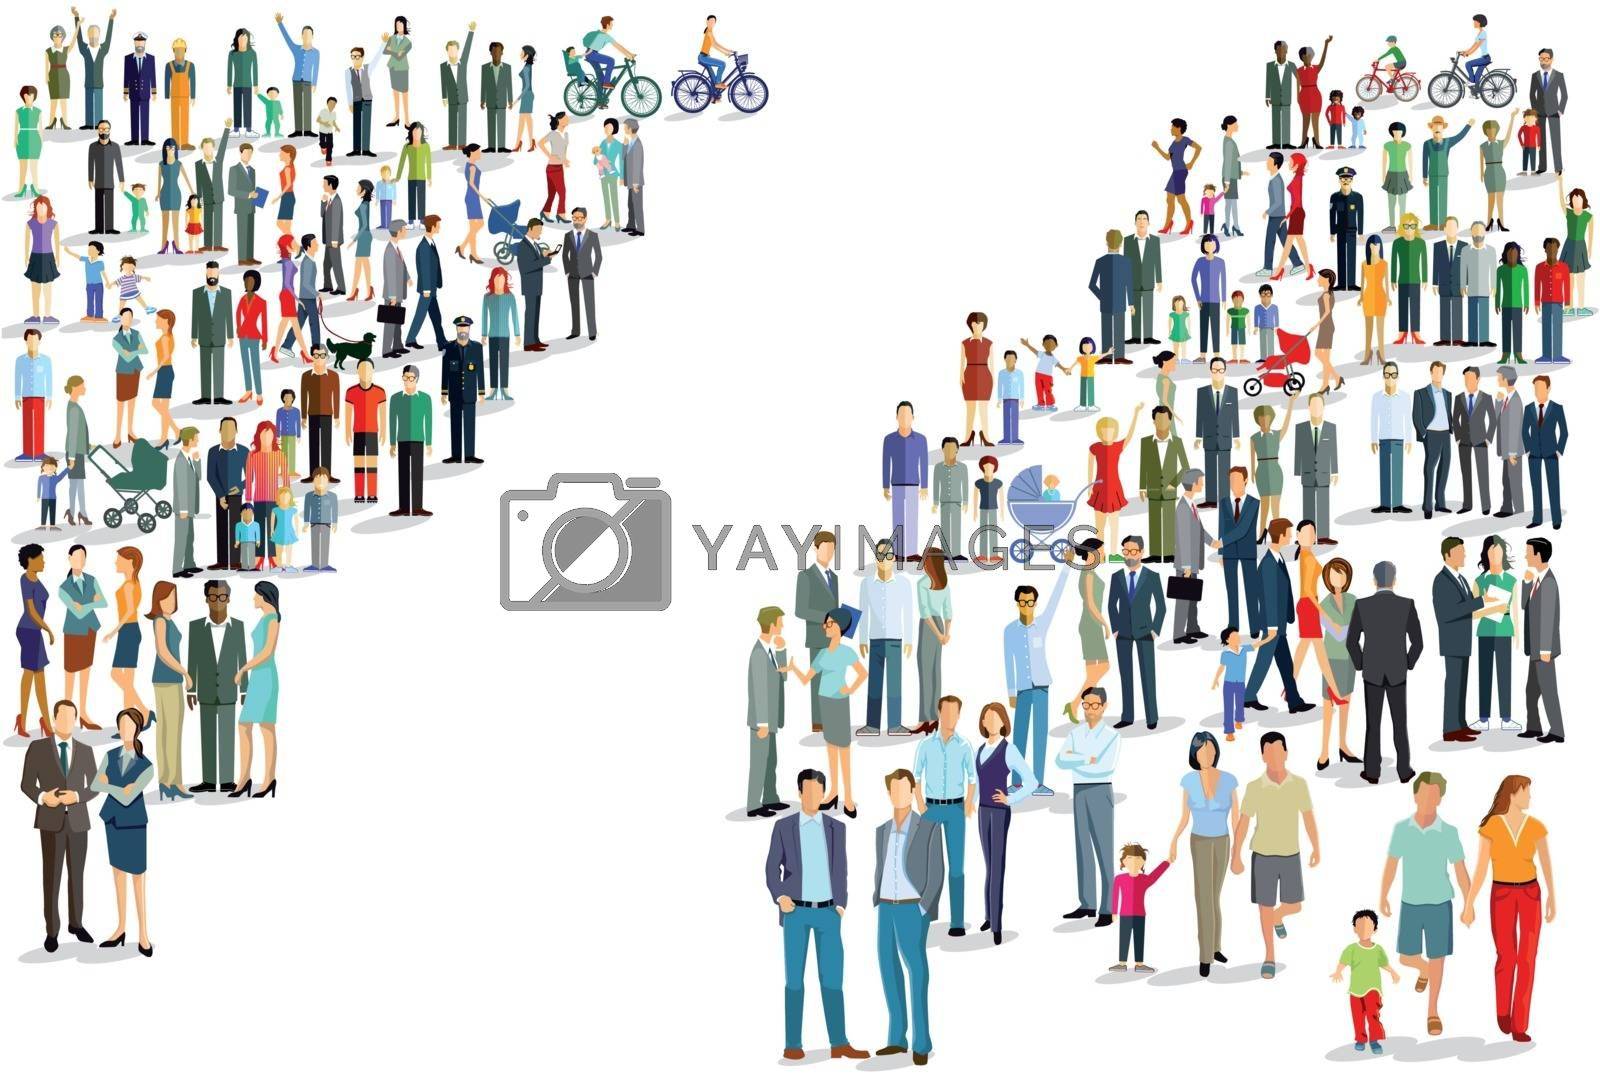 People groups directions, Illustration